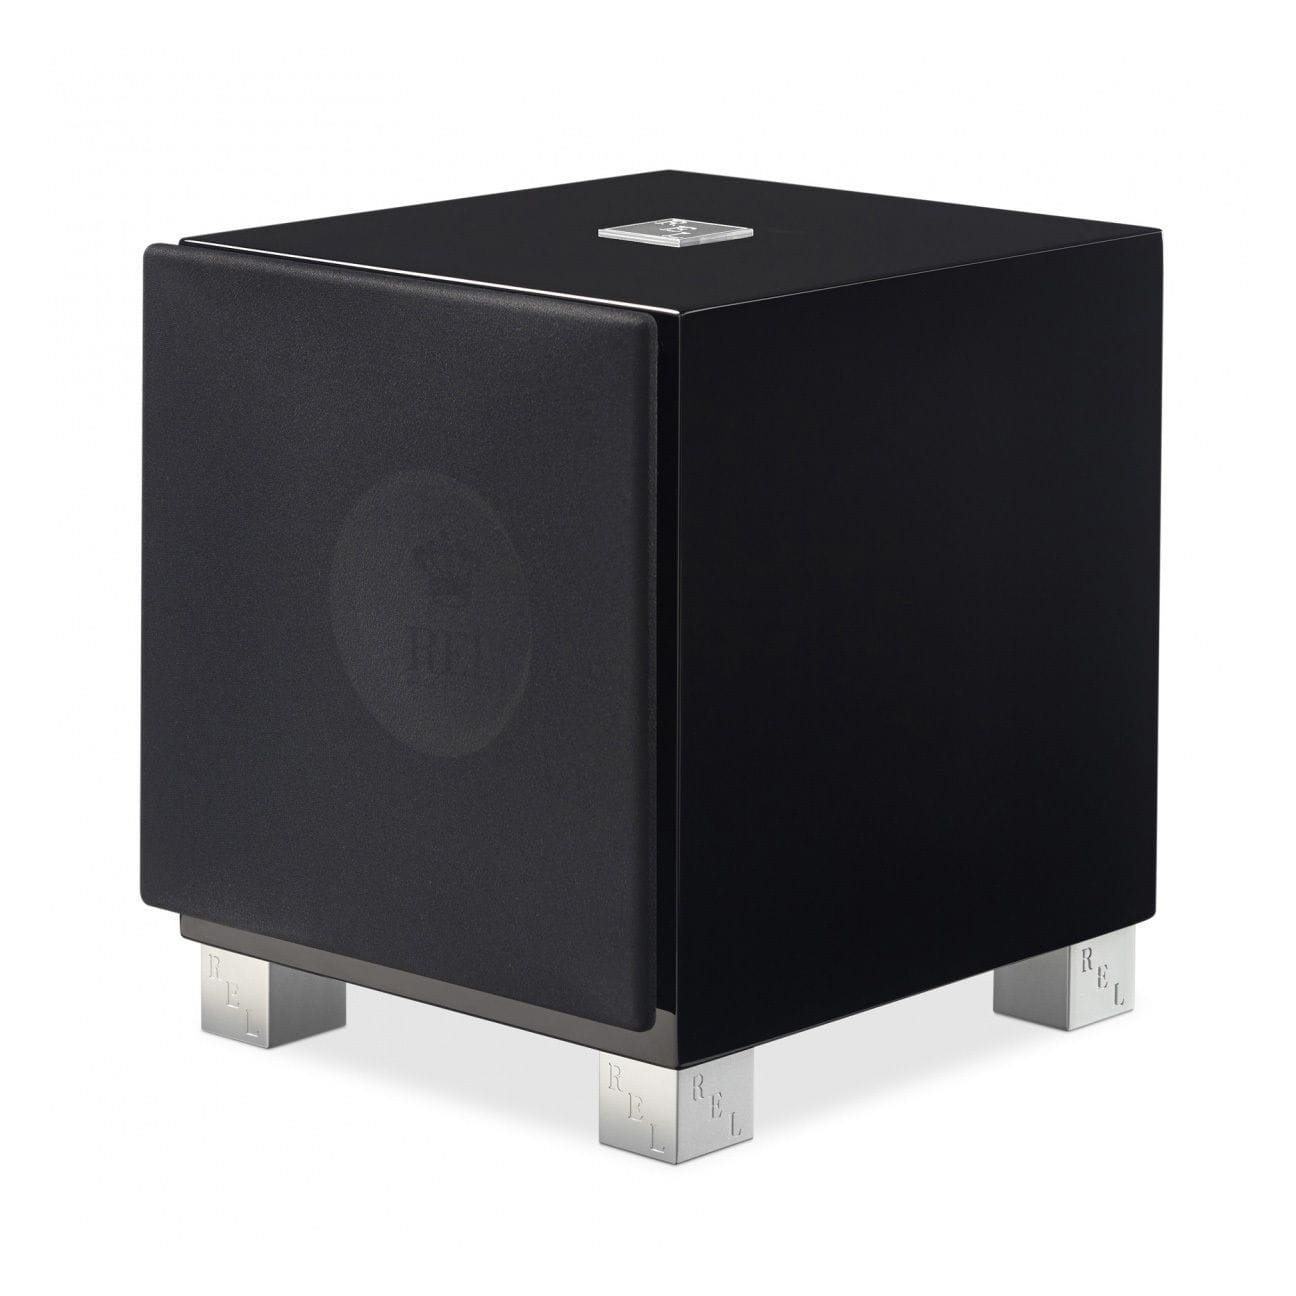 REL T/7i Serie Ti Subwoofer